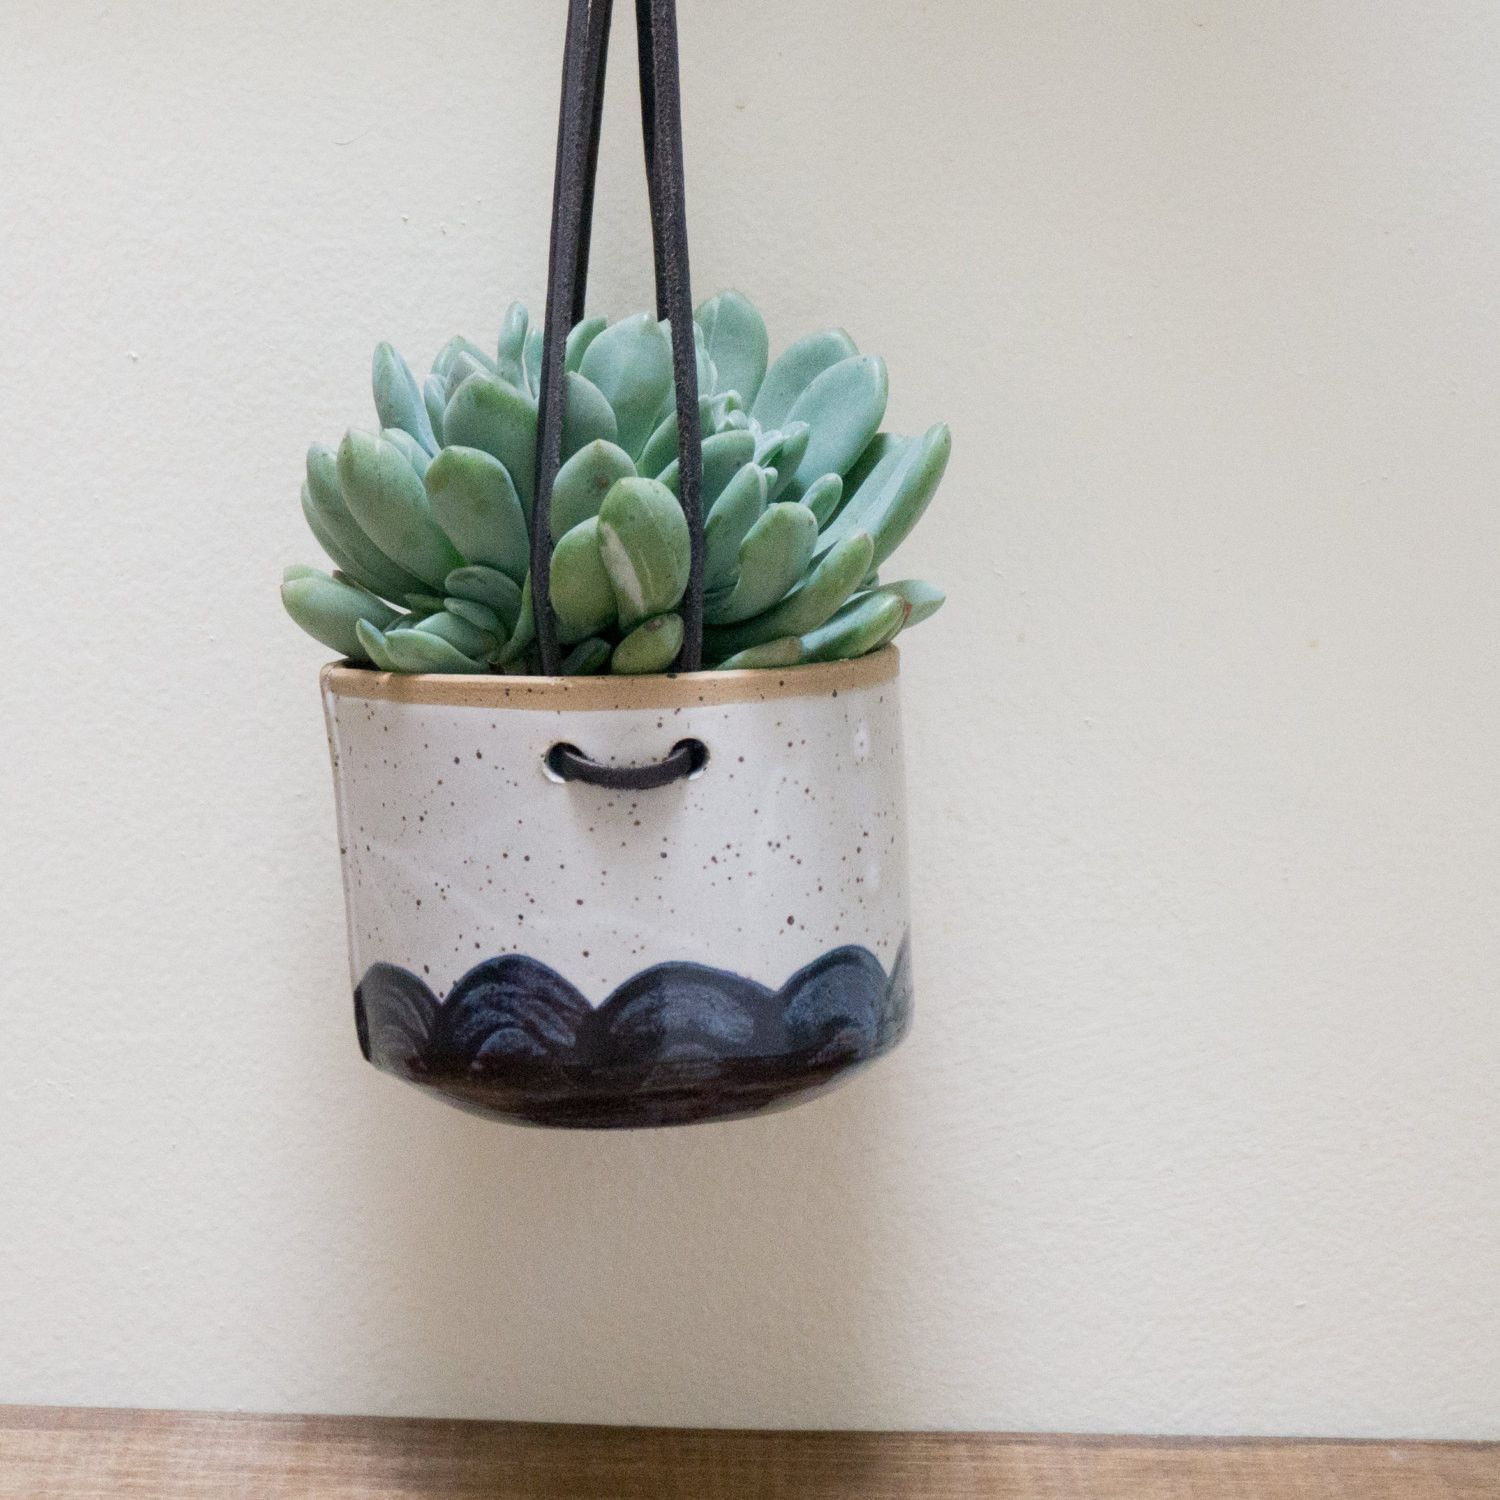 Hanging Wall Planter for Succulents Pottery plant pot